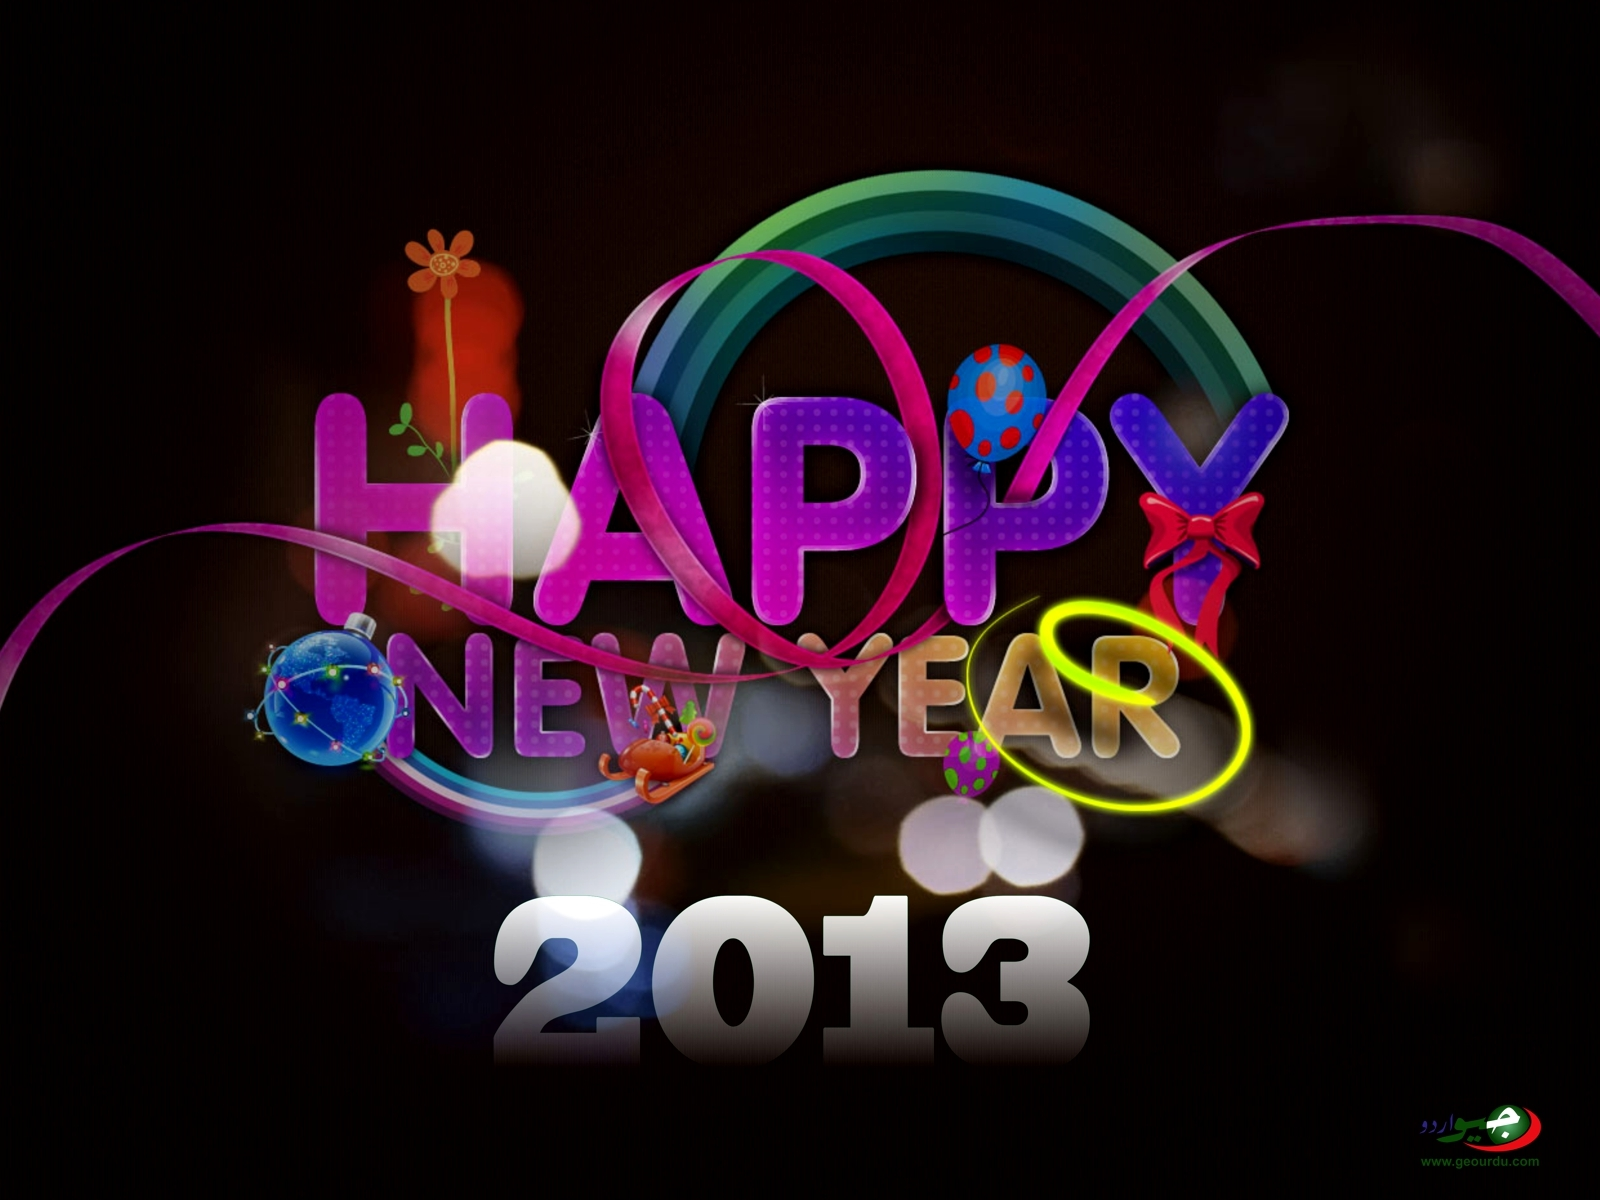 happy new year 2013 happy new year 2013 happy new year 2013 happy new . 1600 x 1200.Happy New Year Graphics Free Download